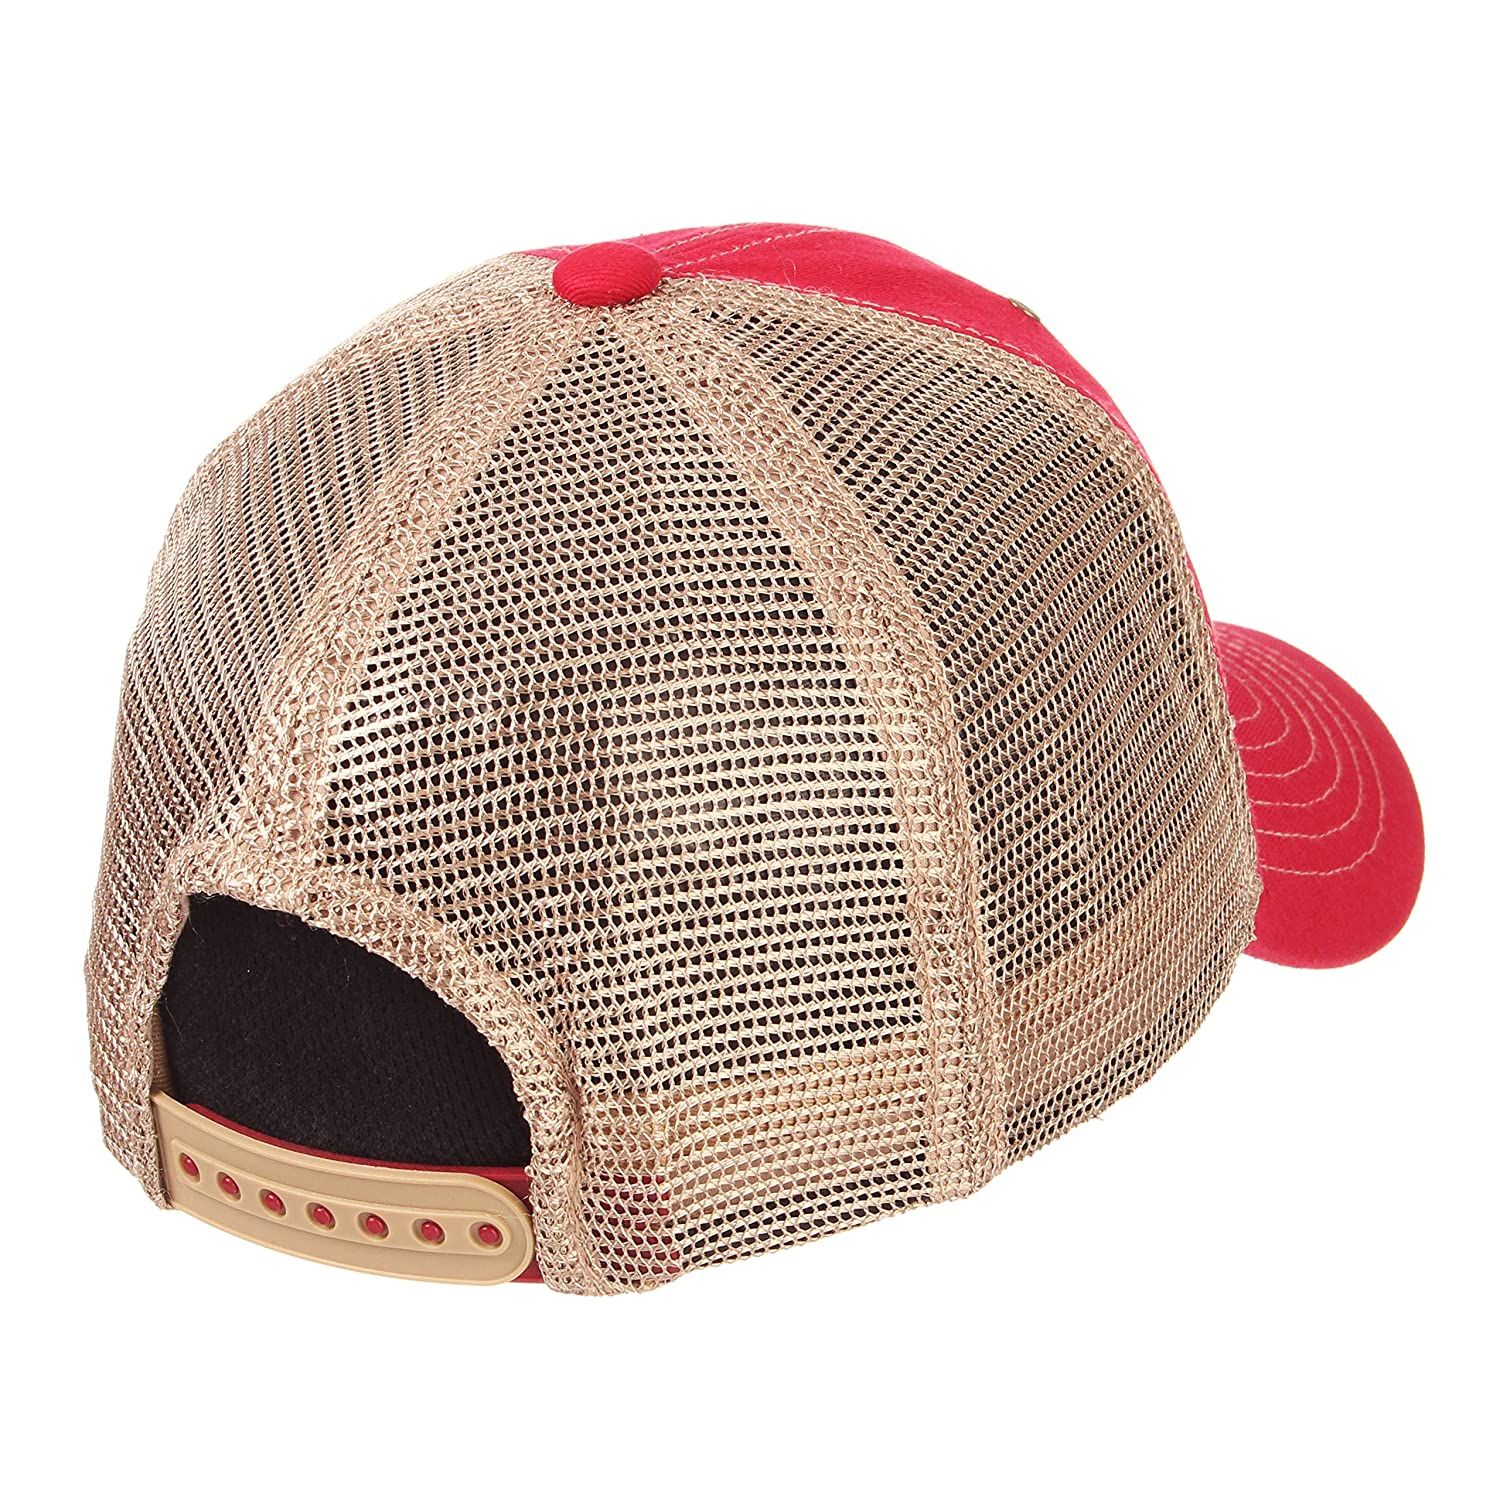 Adjustable Zephyr Mens Tatter Relaxed Cap Dark Red